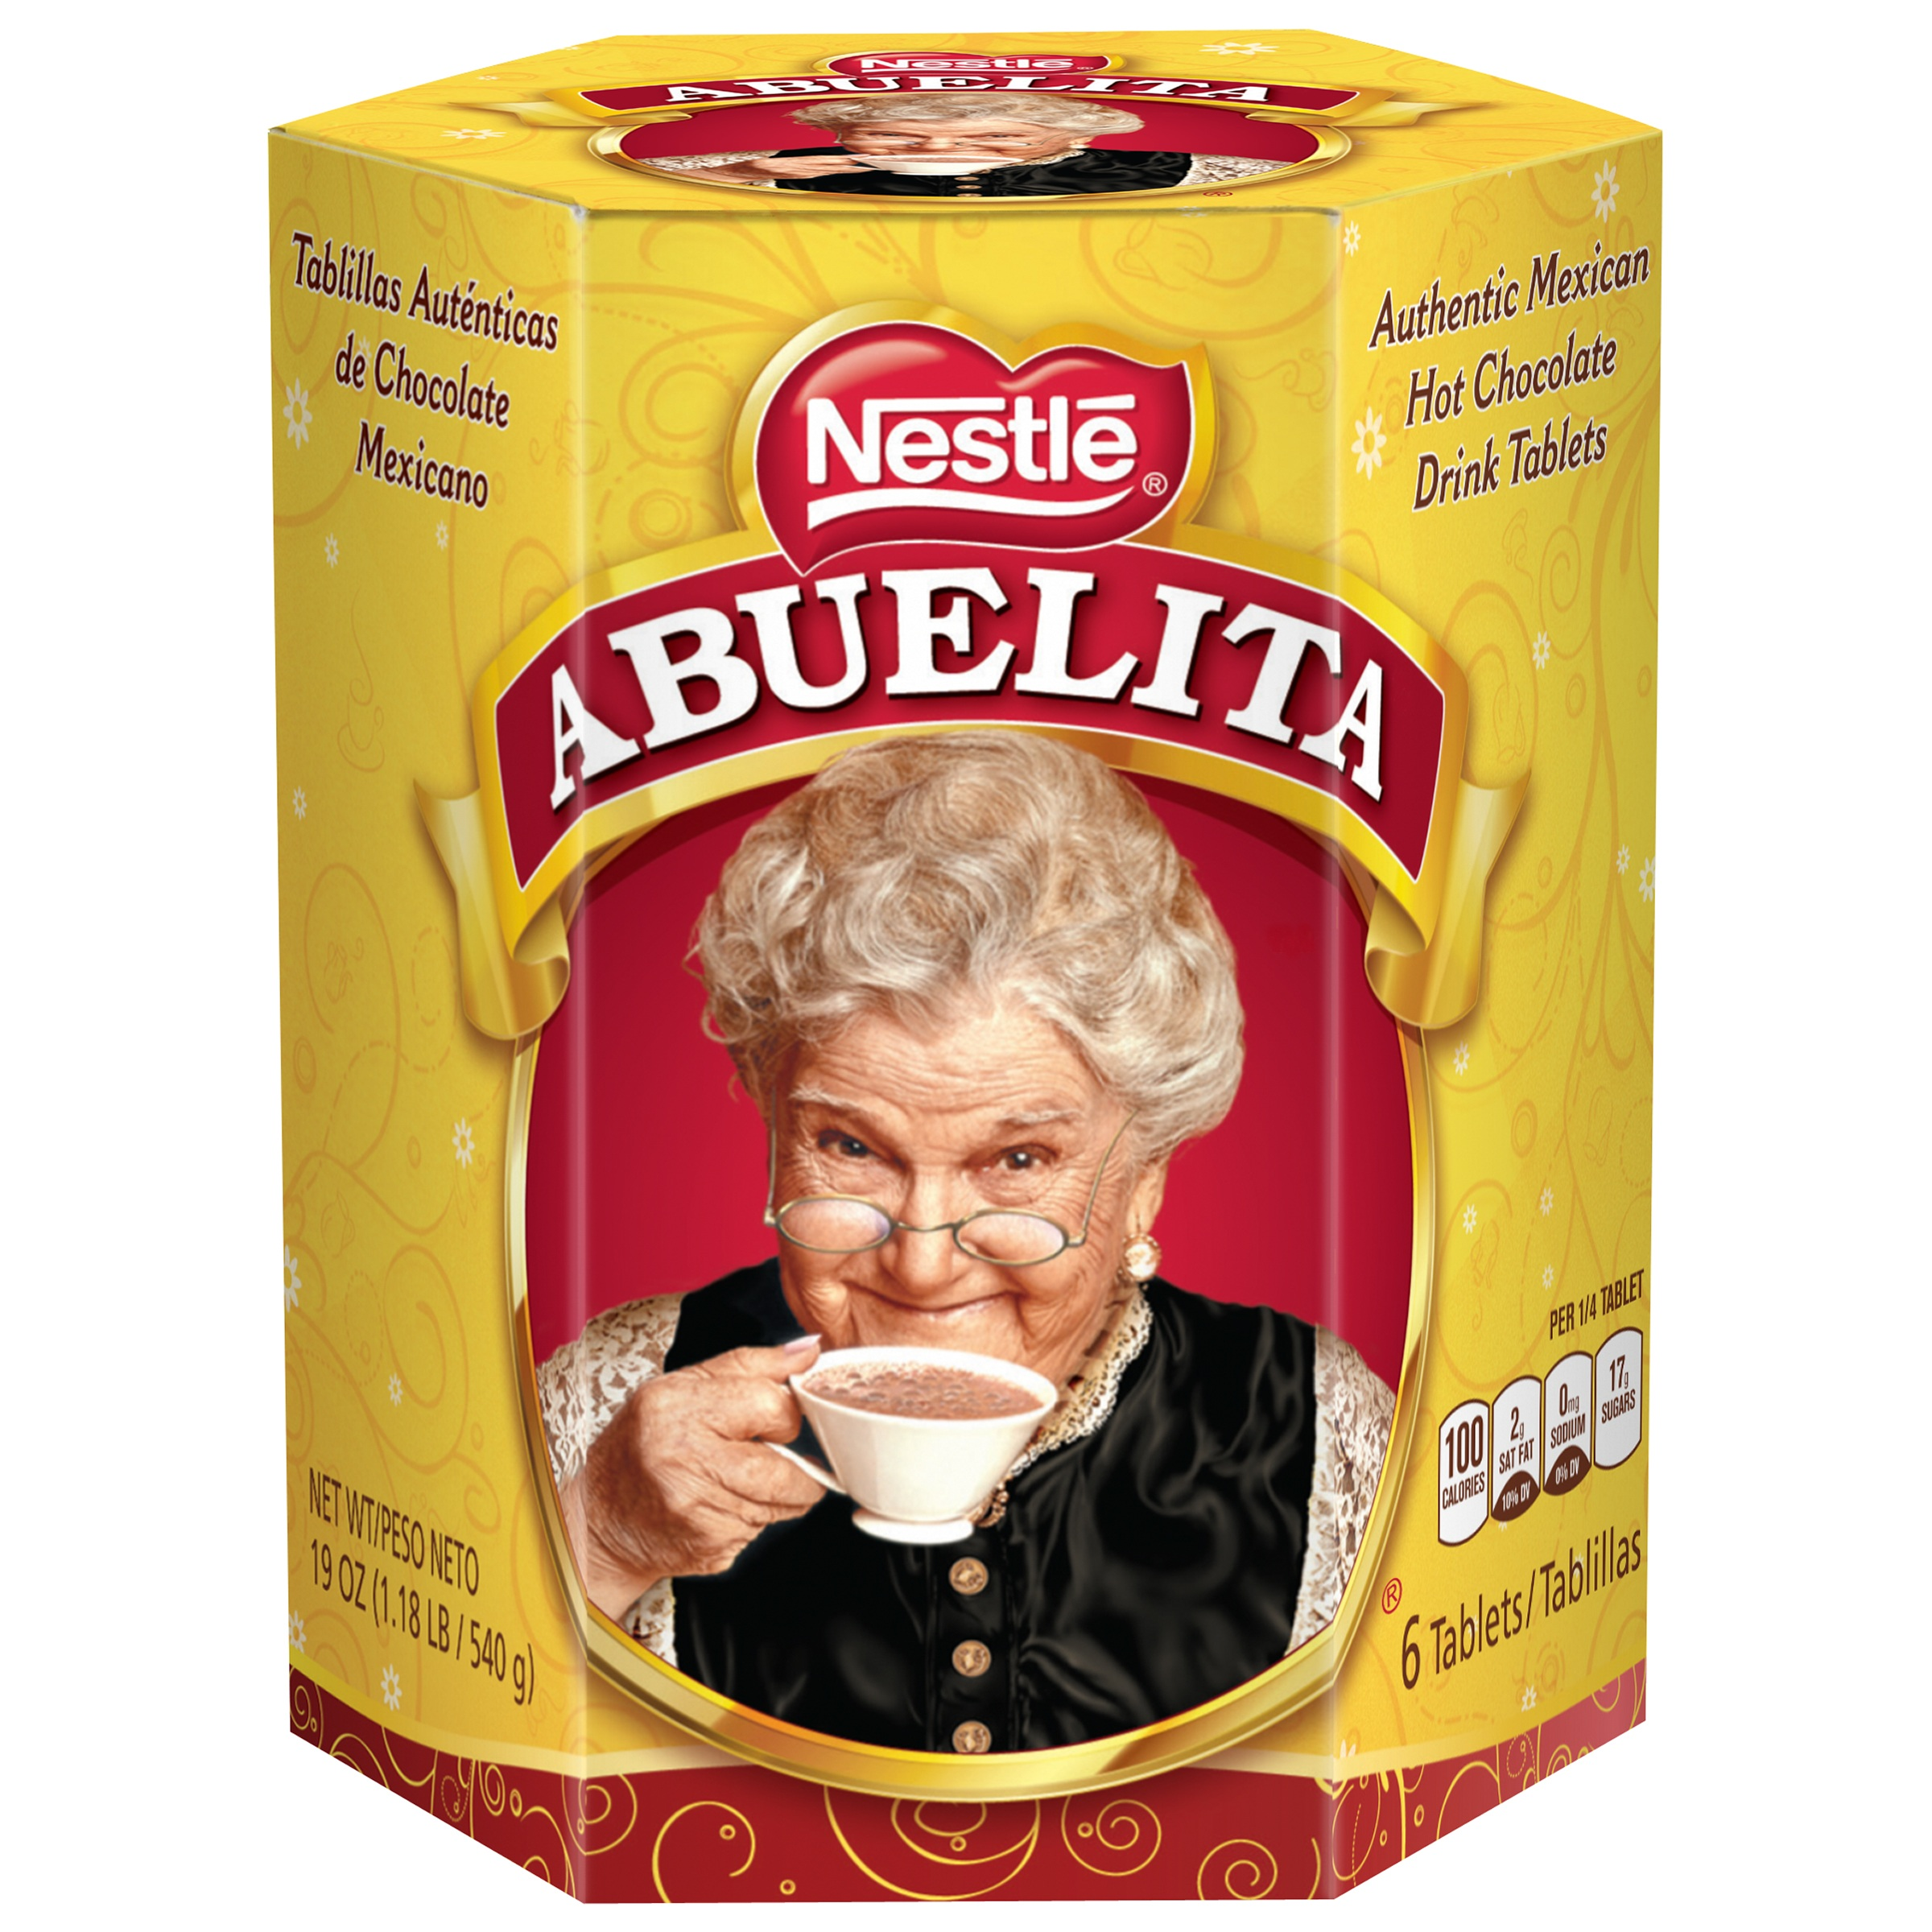 Image of Nestle ABUELITA Authentic Mexican Hot Chocolate Drink Tablets 19 oz. Box